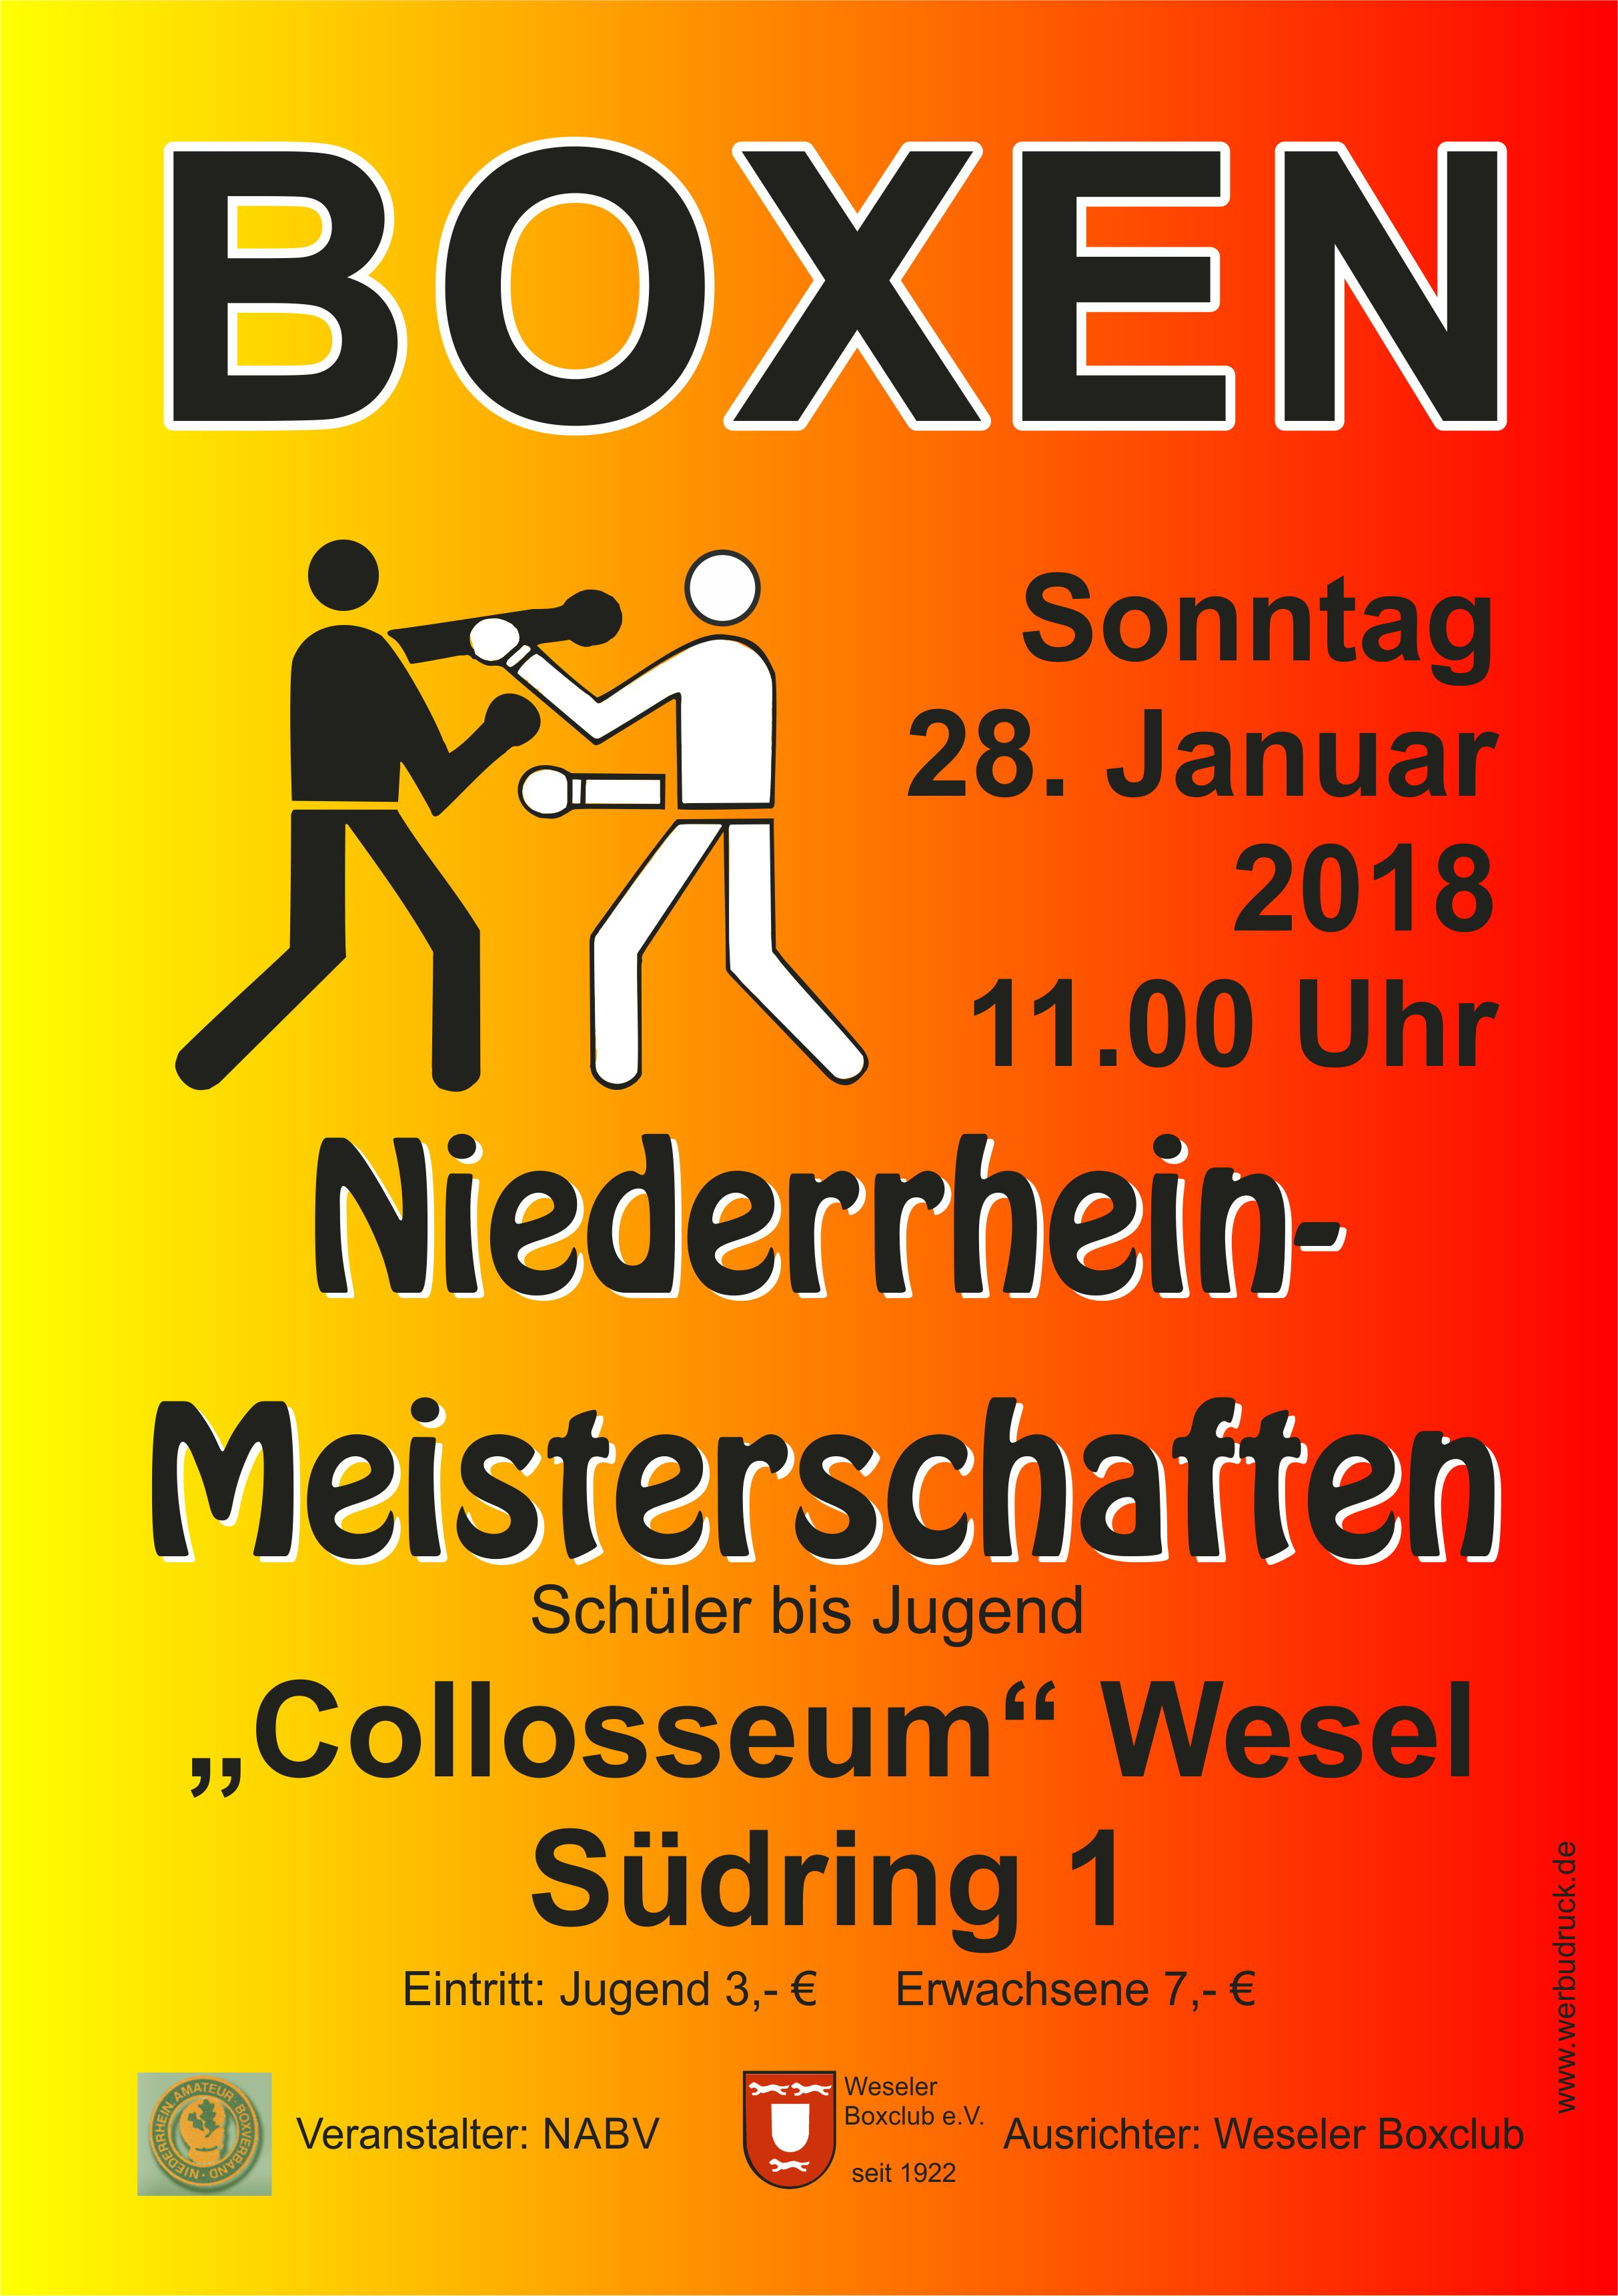 Boxen in MG